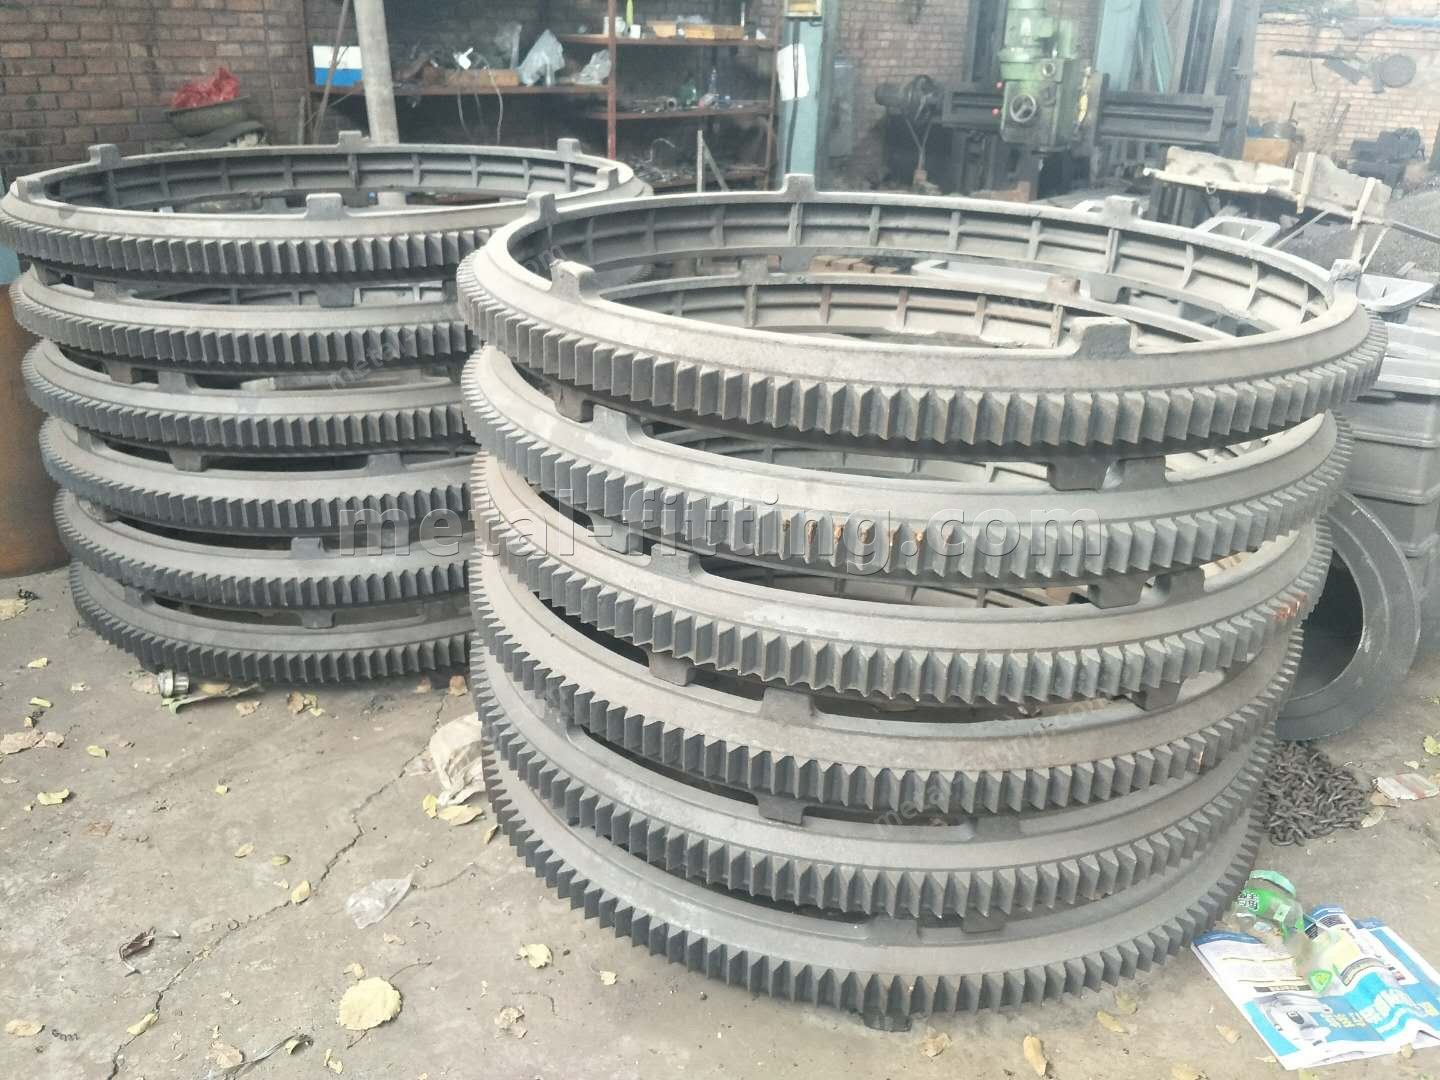 Casted iron Ring Gear and Pulley for concret Mixer-391331226655923181